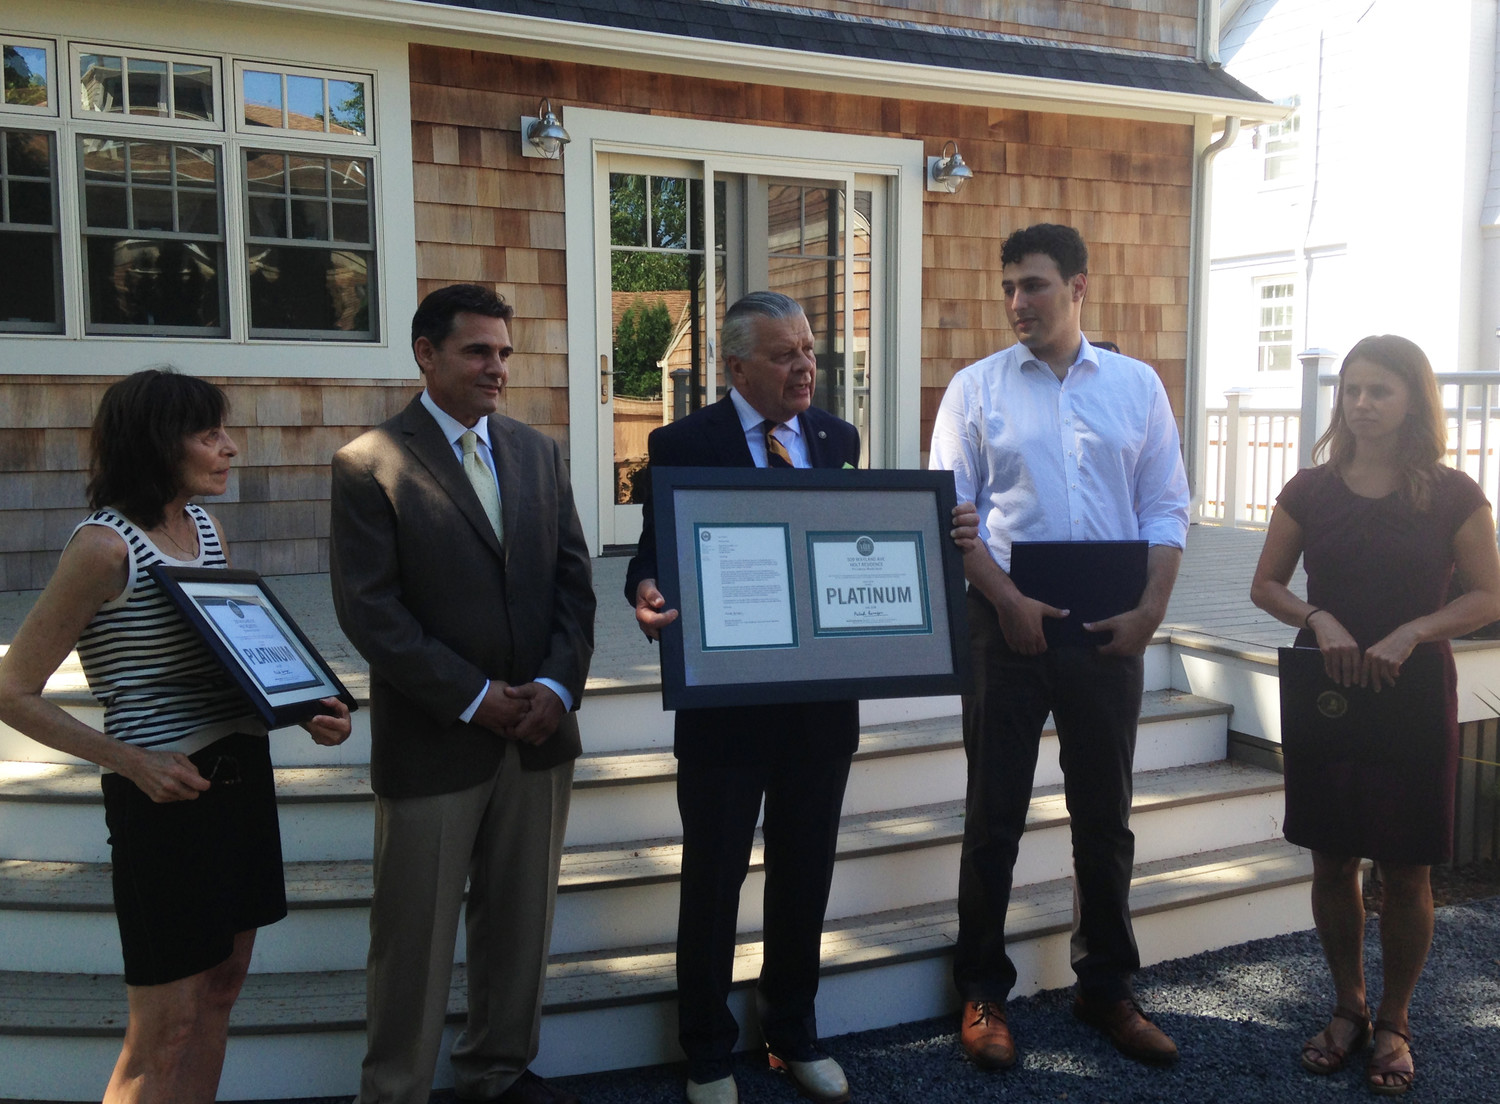 The award ceremony for the first Platinum LEED certified home in Rhode Island. From left, Felice Holt, homeowner, Richard Rodi, contractor, Kenneth J. Filarksi, chair of the of U.S. Green Building Council in Rhode Island, State Rep. Aaron Regunberg, and Providence Office of Sustainability director Leah Bamberger.